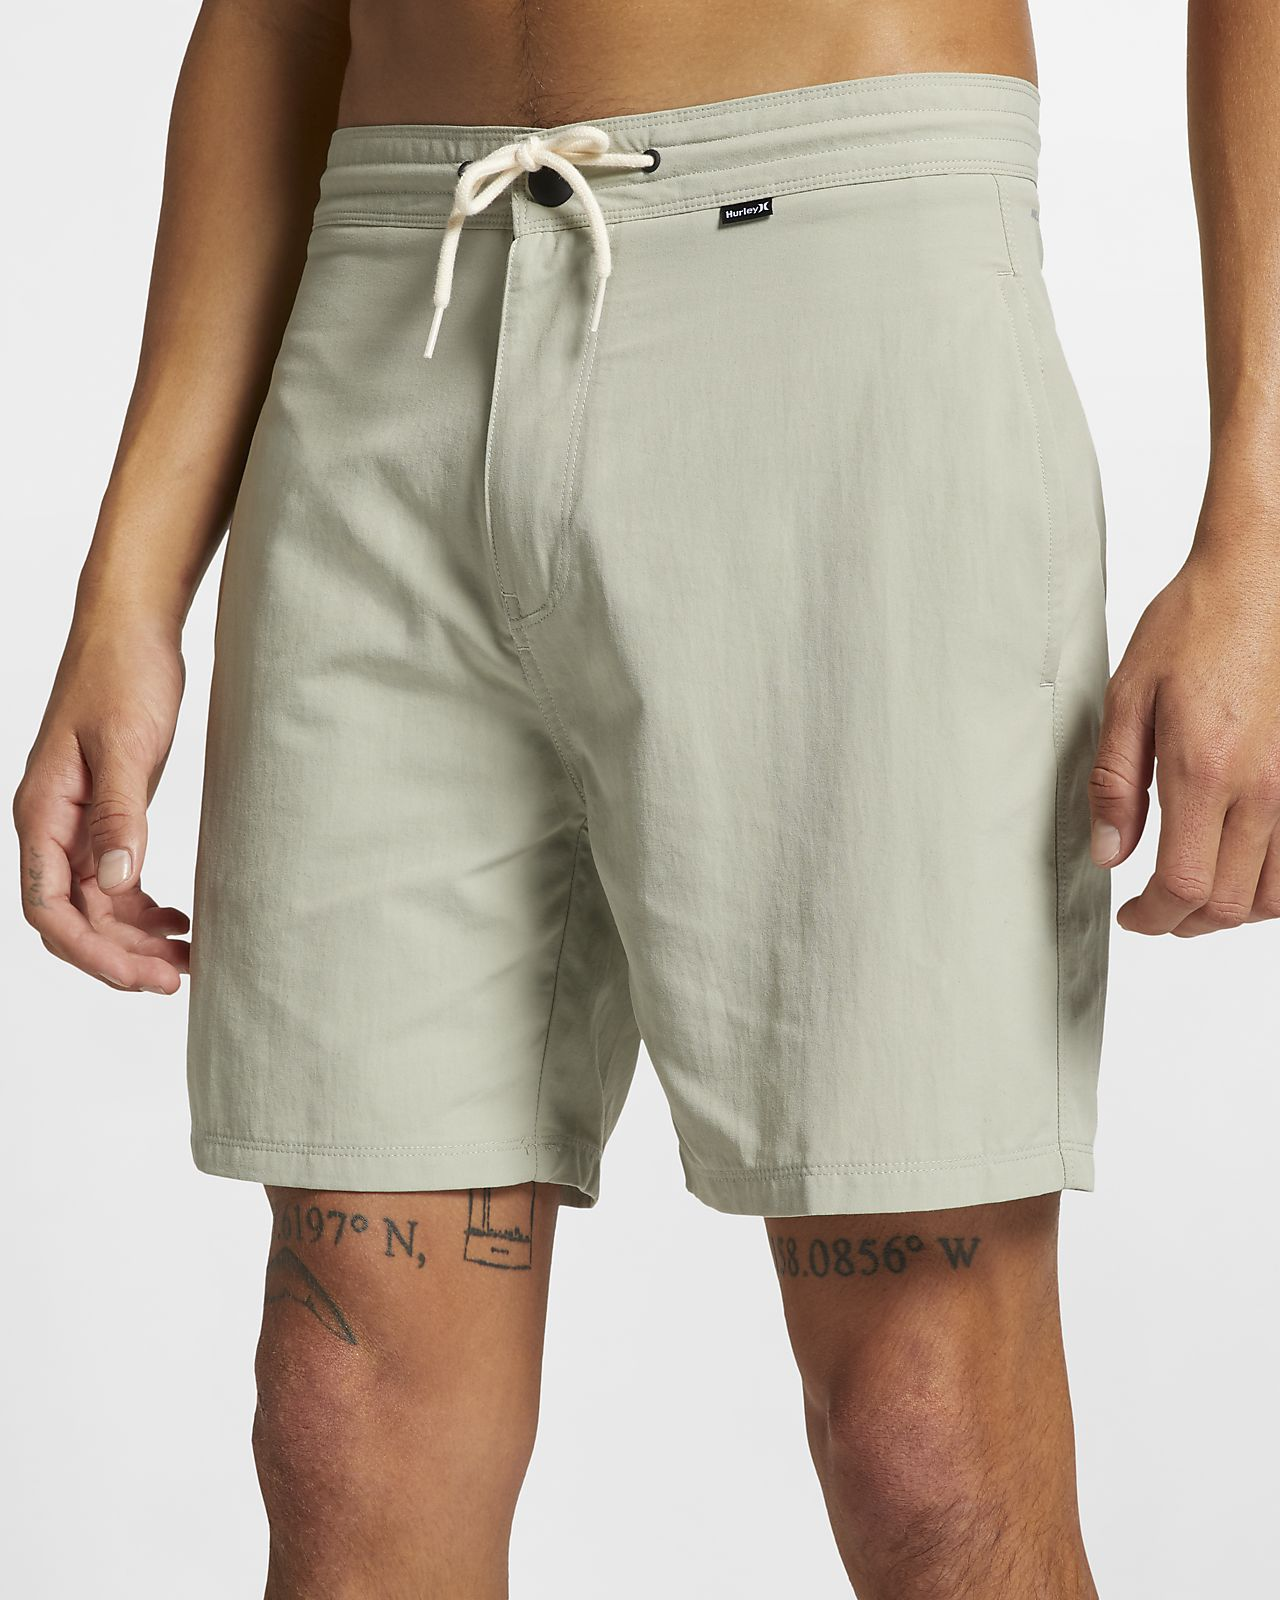 Hurley Dri-FIT Brooks Men's 46cm (approx.) Shorts